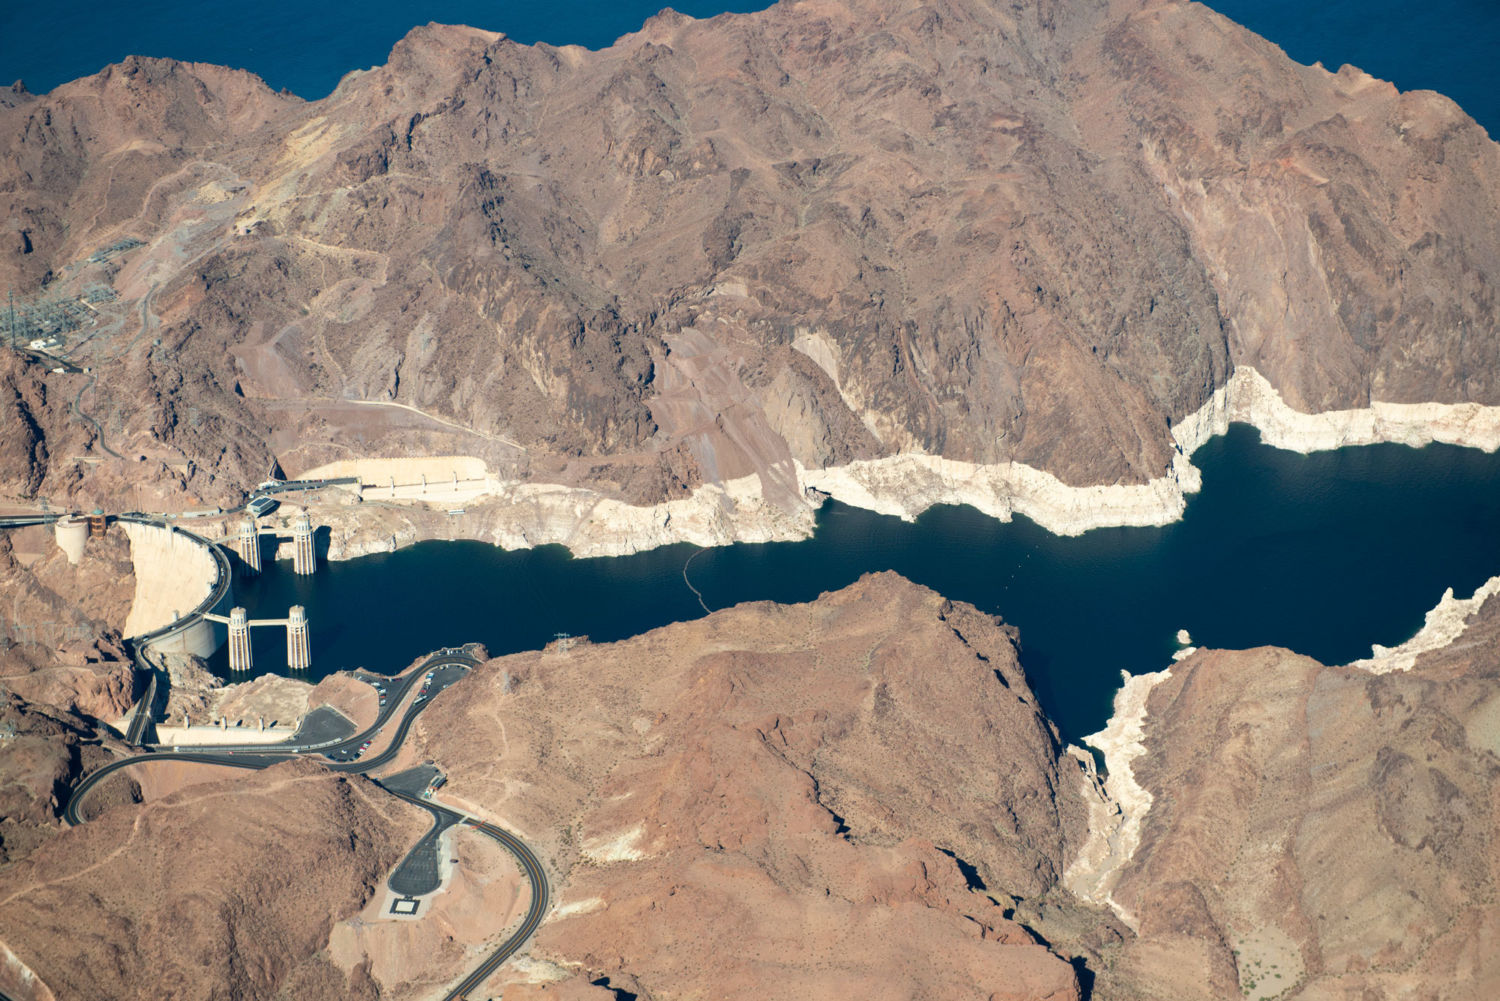 On the Water-Starved Colorado River, Drought Is the New Normal - Yale E360